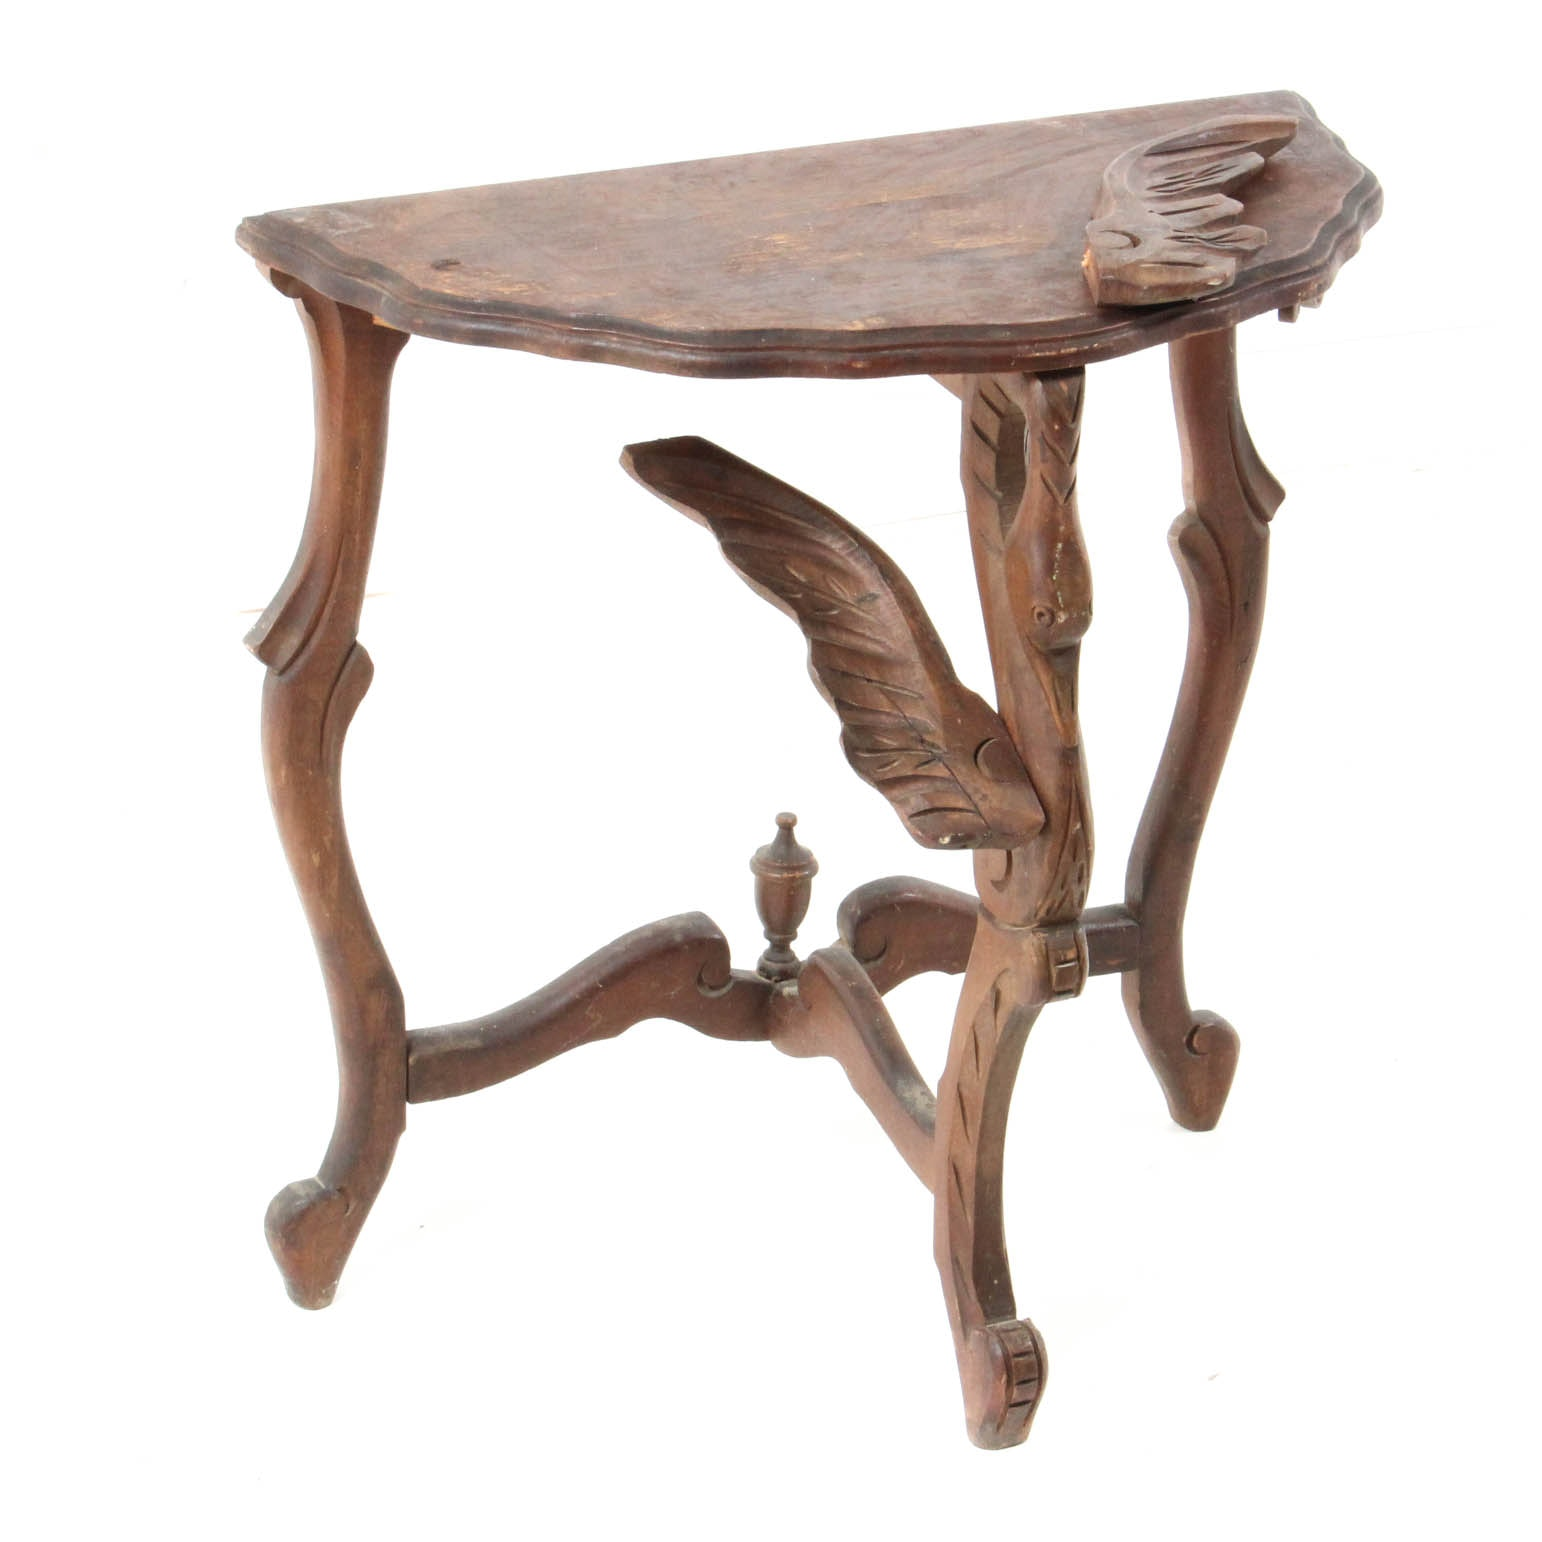 Antique Hand Carved Wooden Accent Table, Probably Venetian